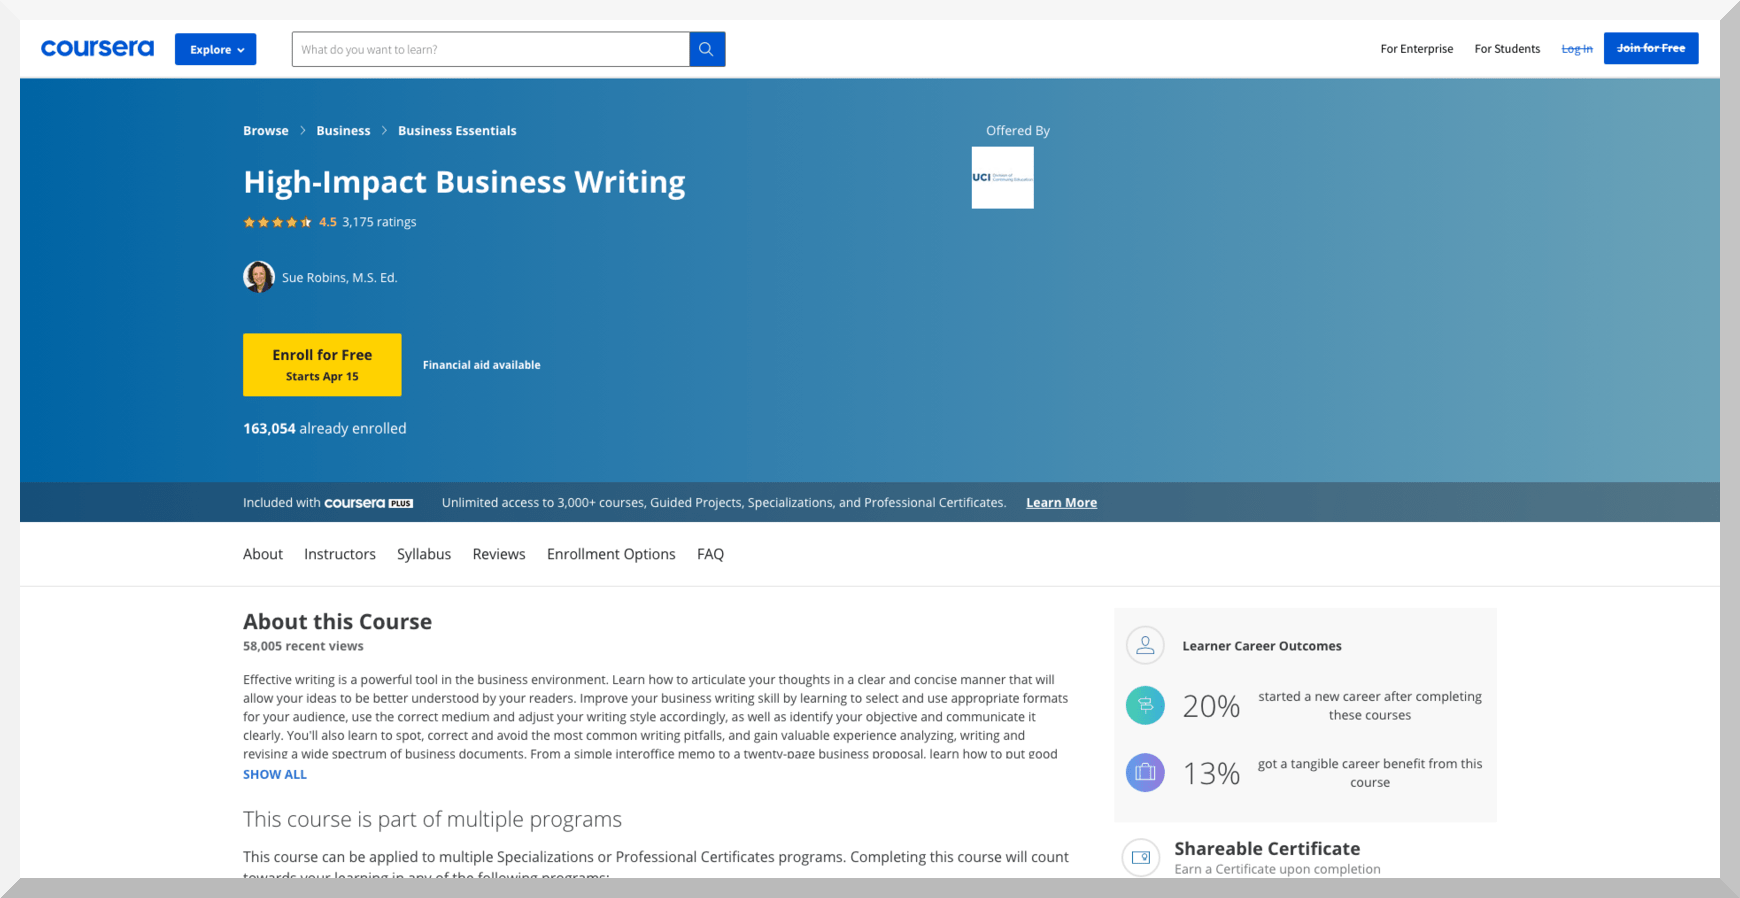 High-Impact Business Writing – Coursera